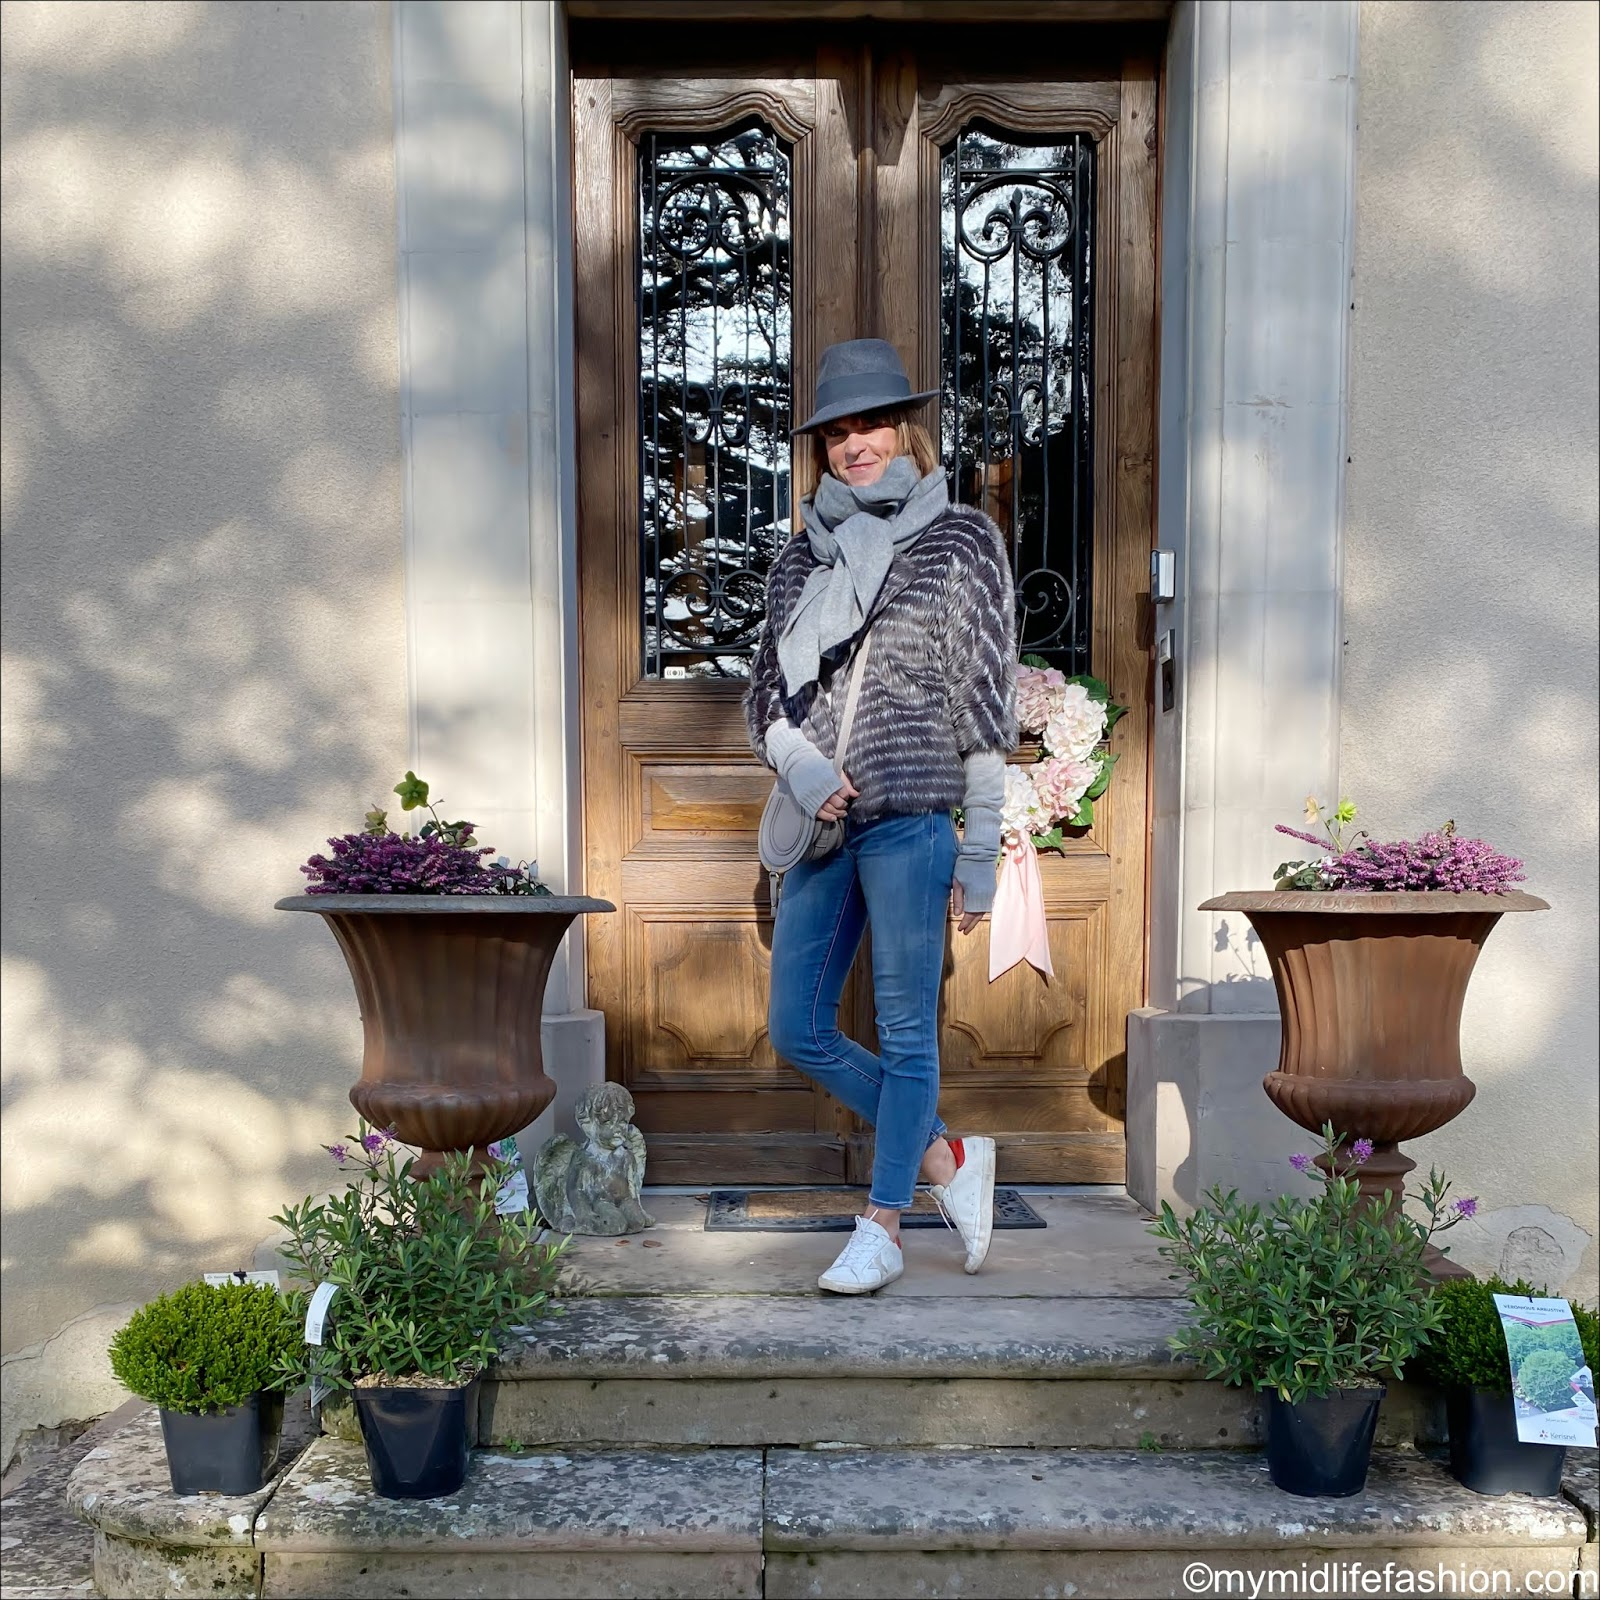 my midlife fashion, tibi faux fur coat, Marks and Spencer pure cashmere roll neck jumper, j crew 8 inch toothpick skinny jeans, golden goose superstar low top leather trainers, Chloe marcie small cross body bag, panaizza felt fedora hat, hush cashmere fingerless gloves